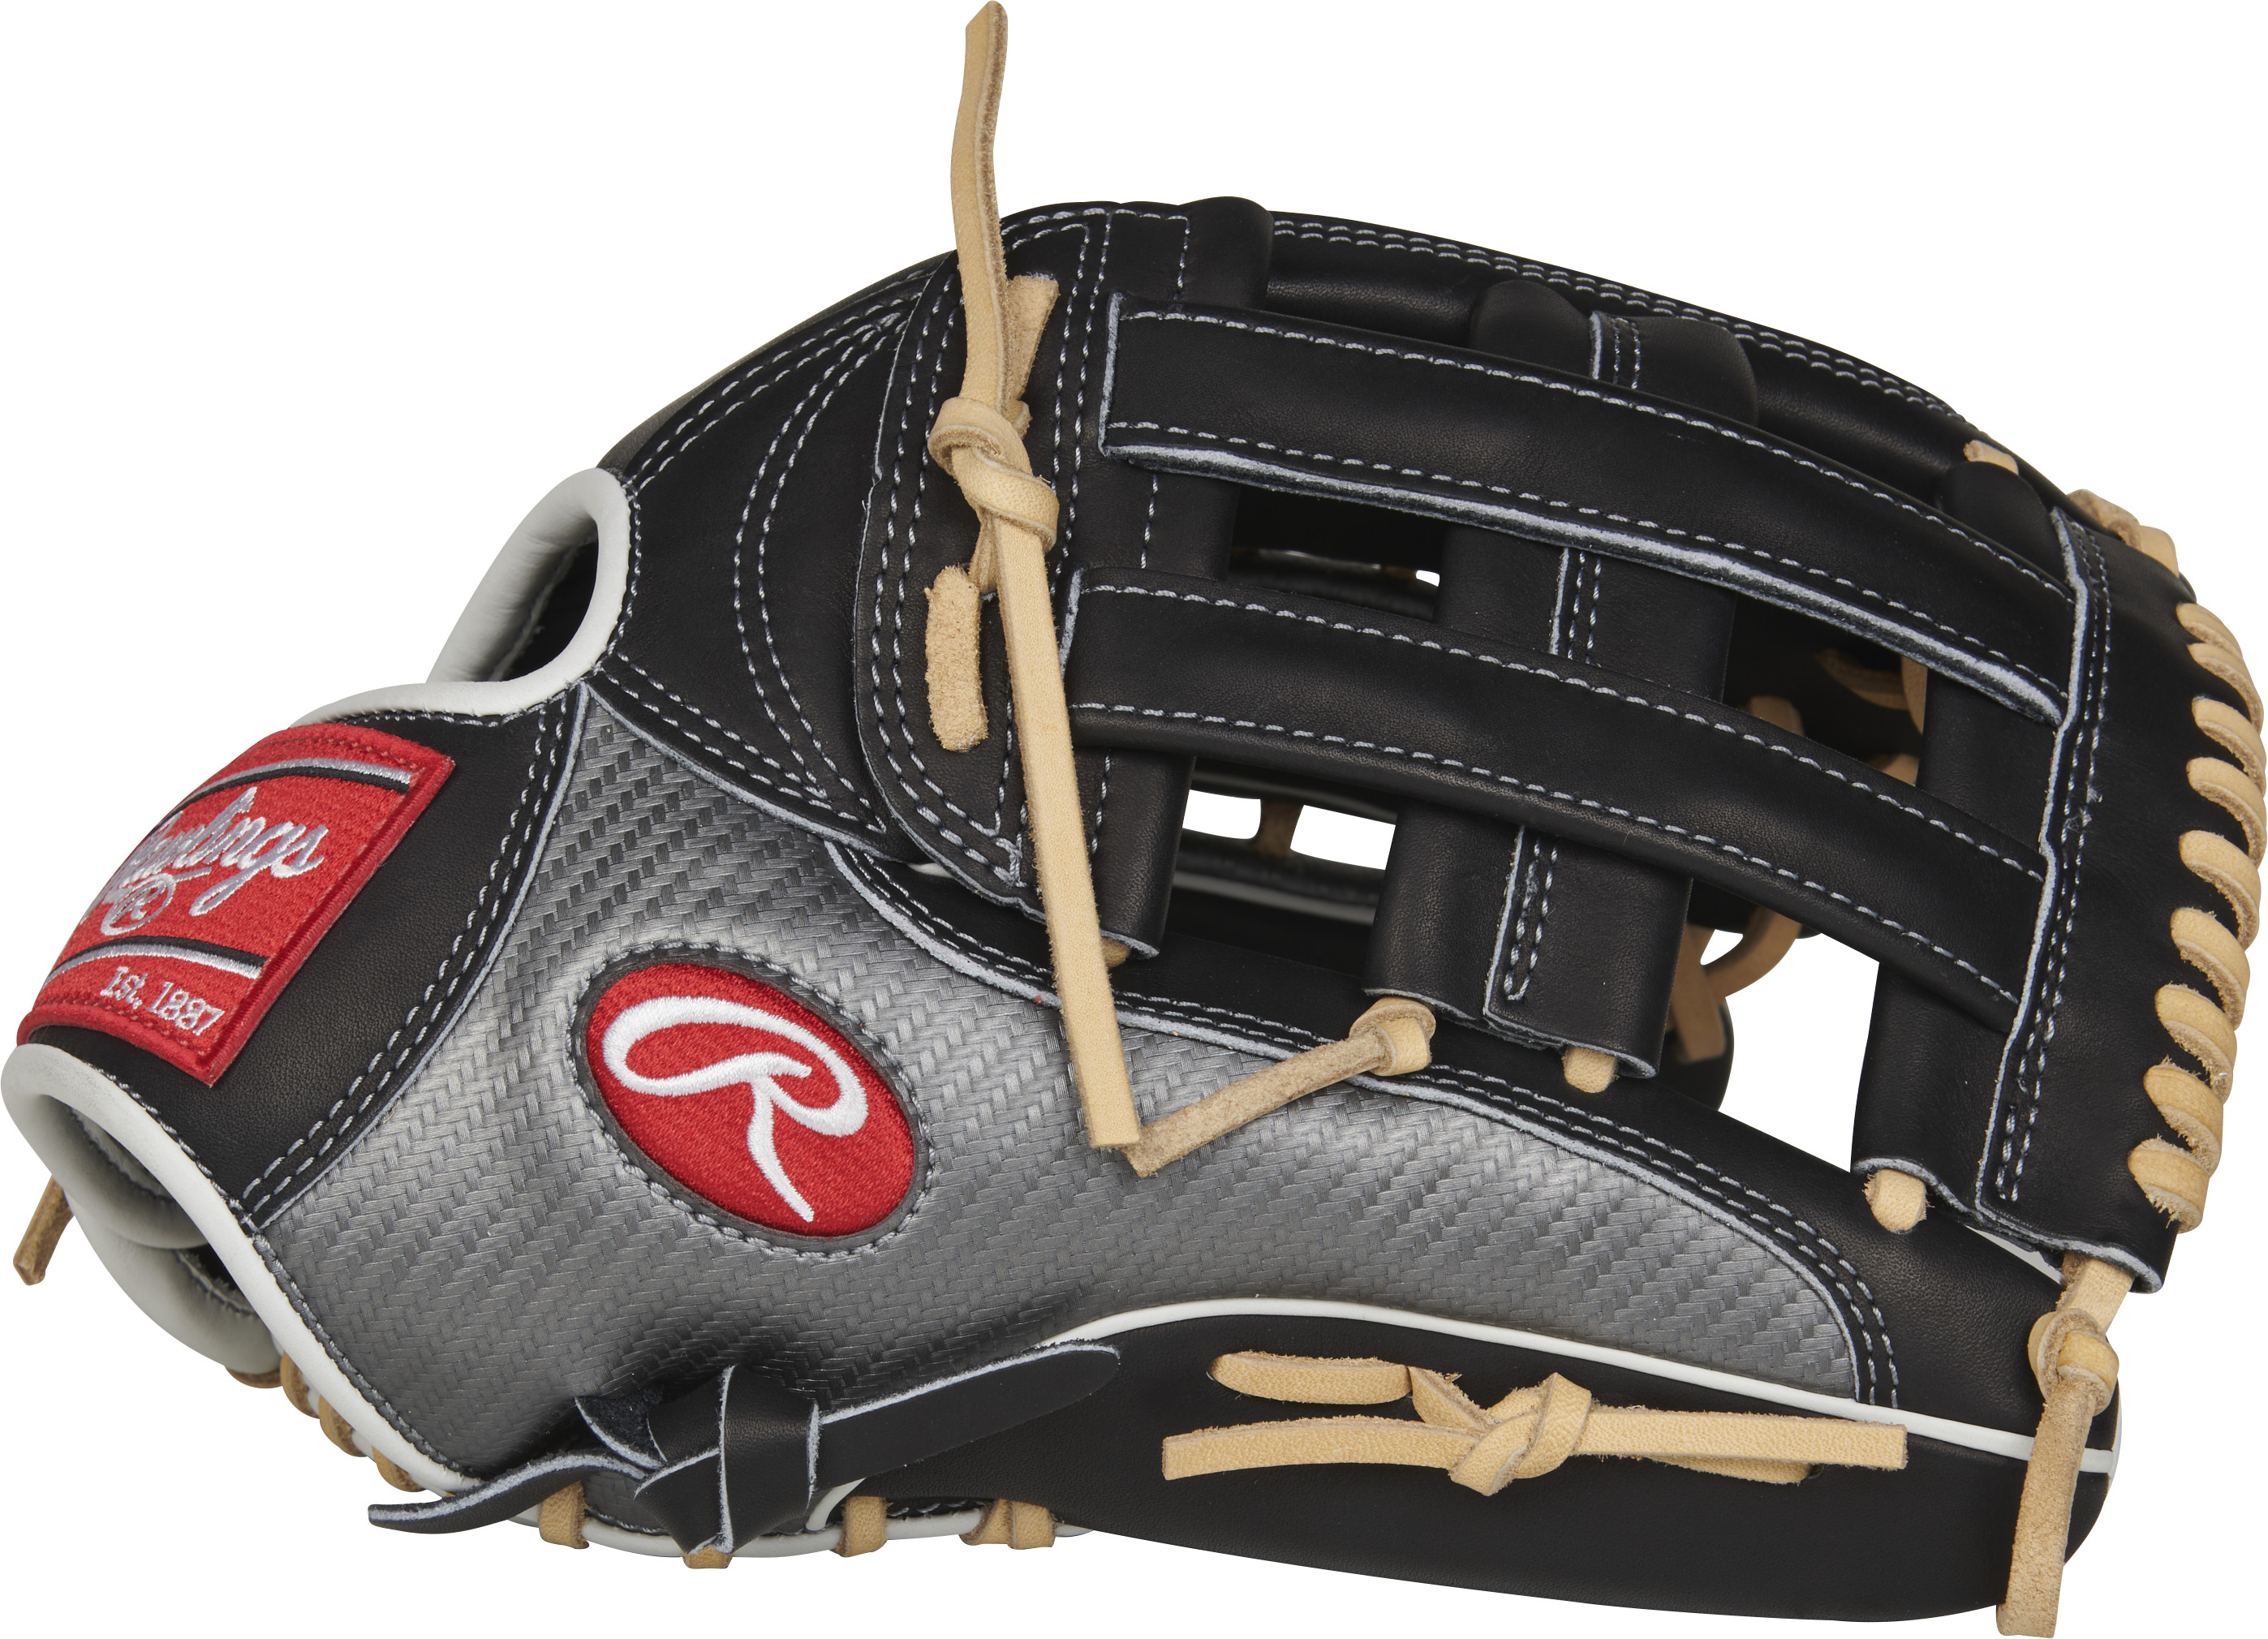 http://www.bestbatdeals.com/images/gloves/rawlings/PRO3039-6BCF-3.jpg